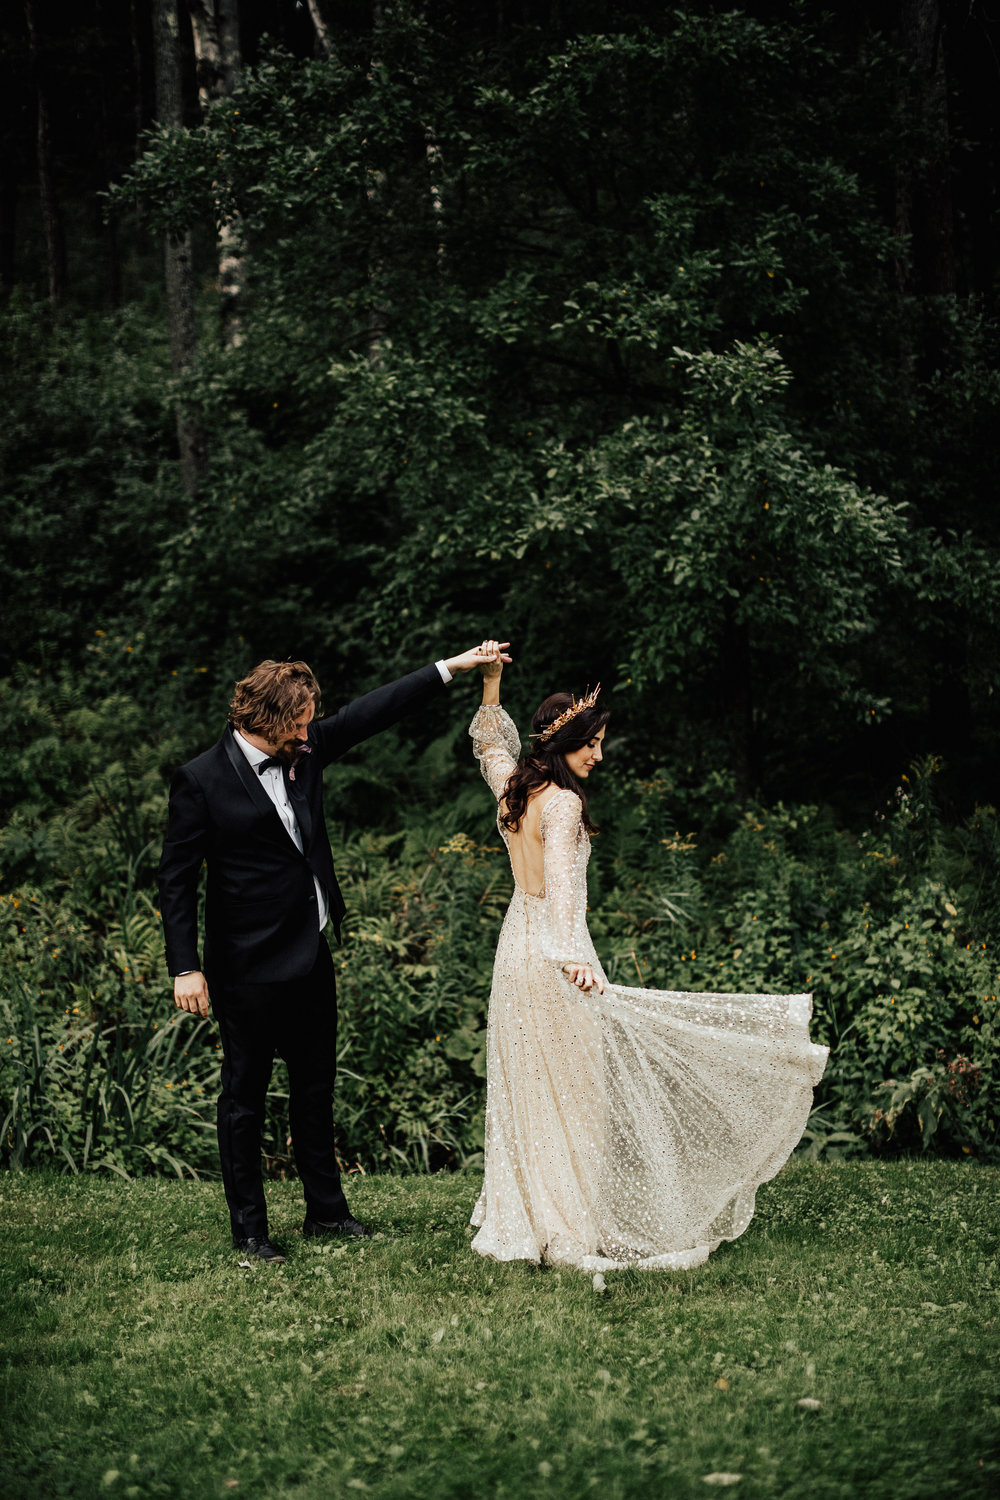 dark-gothic-unconventional-enchanted-fairytale-wedding-inspiration